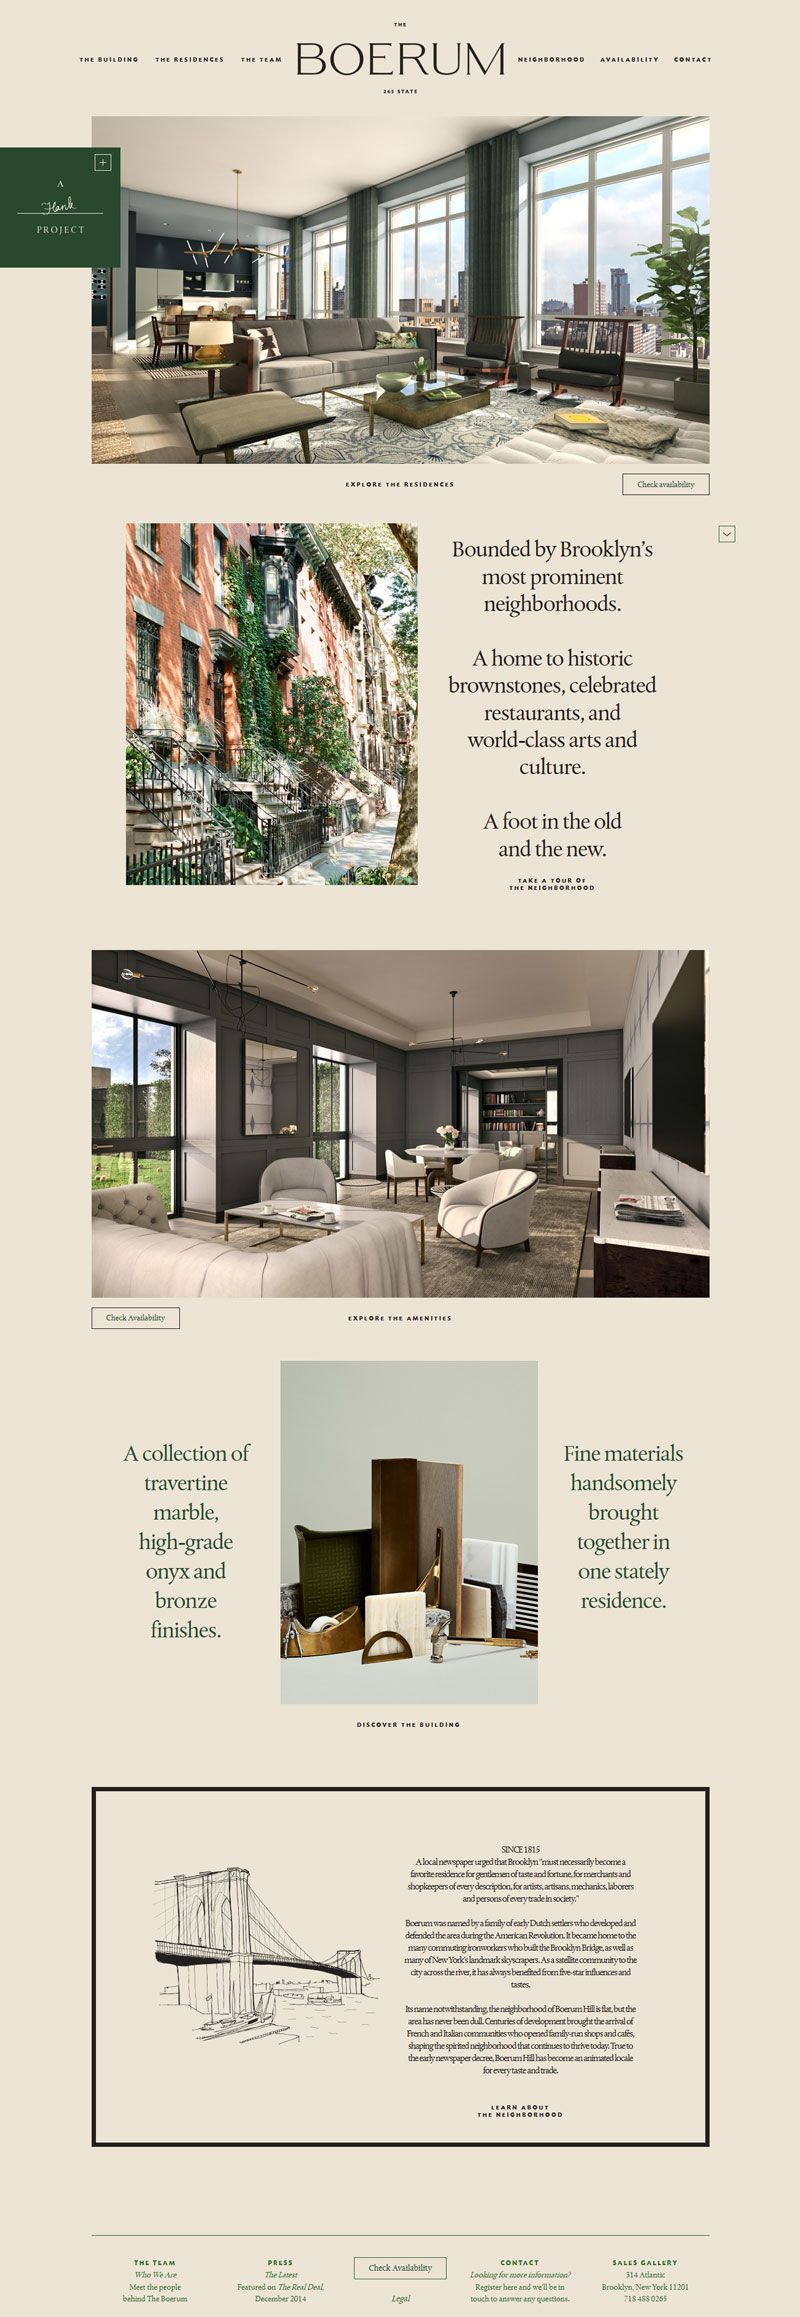 Weekly web design Inspiration for everyone! Introducing Moire ...